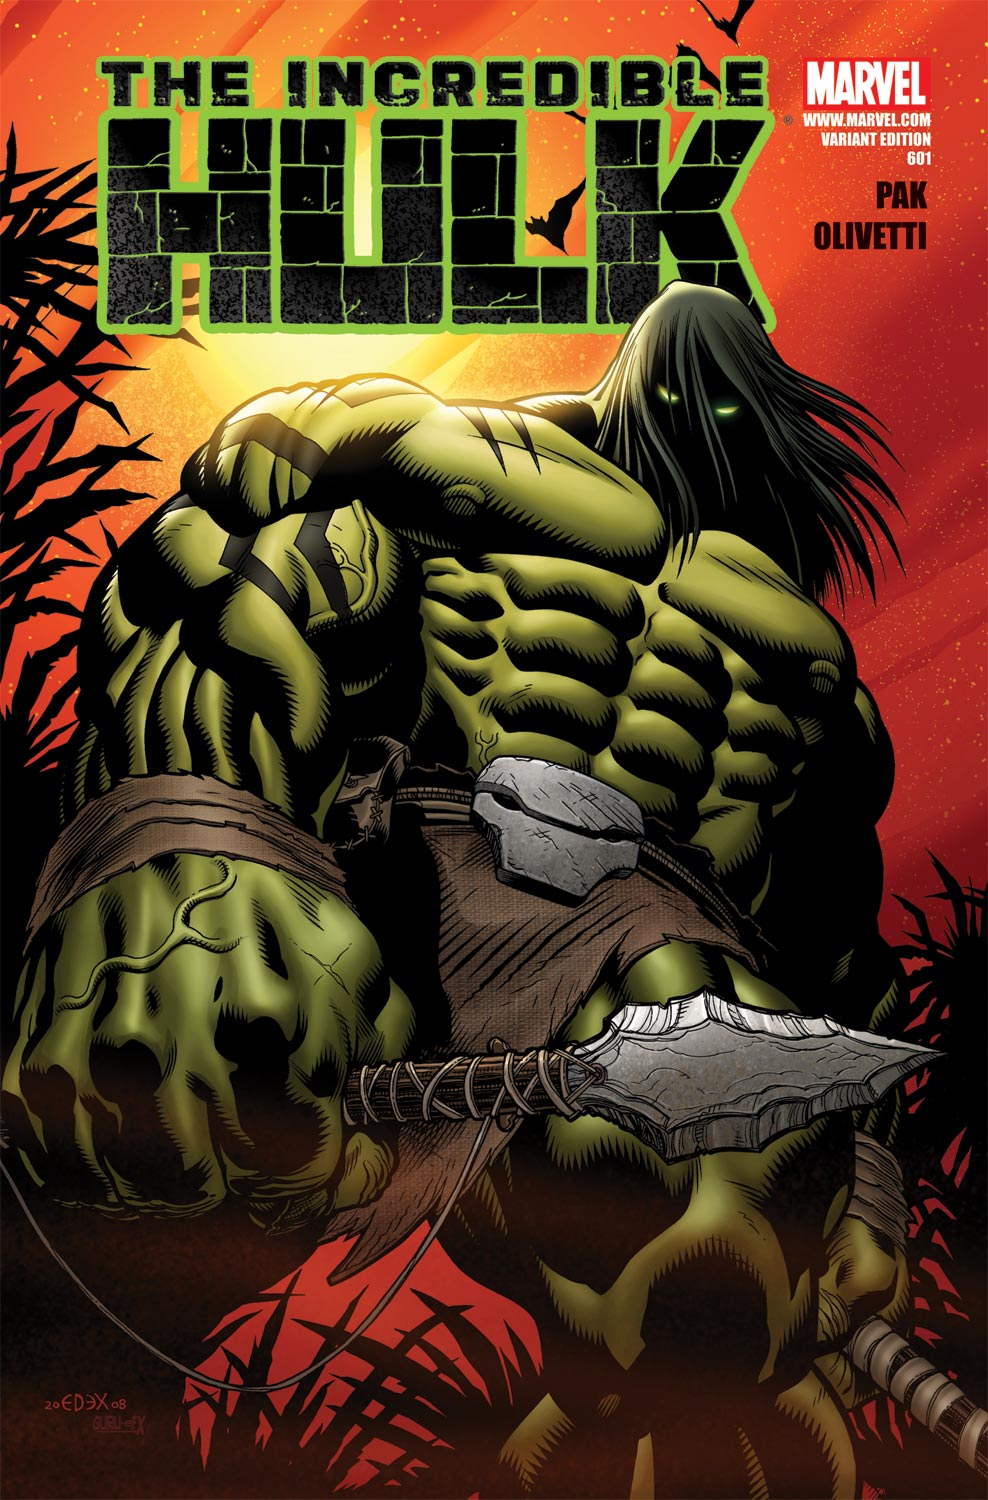 Incredible Hulks (2010) #601 (VARIANT)